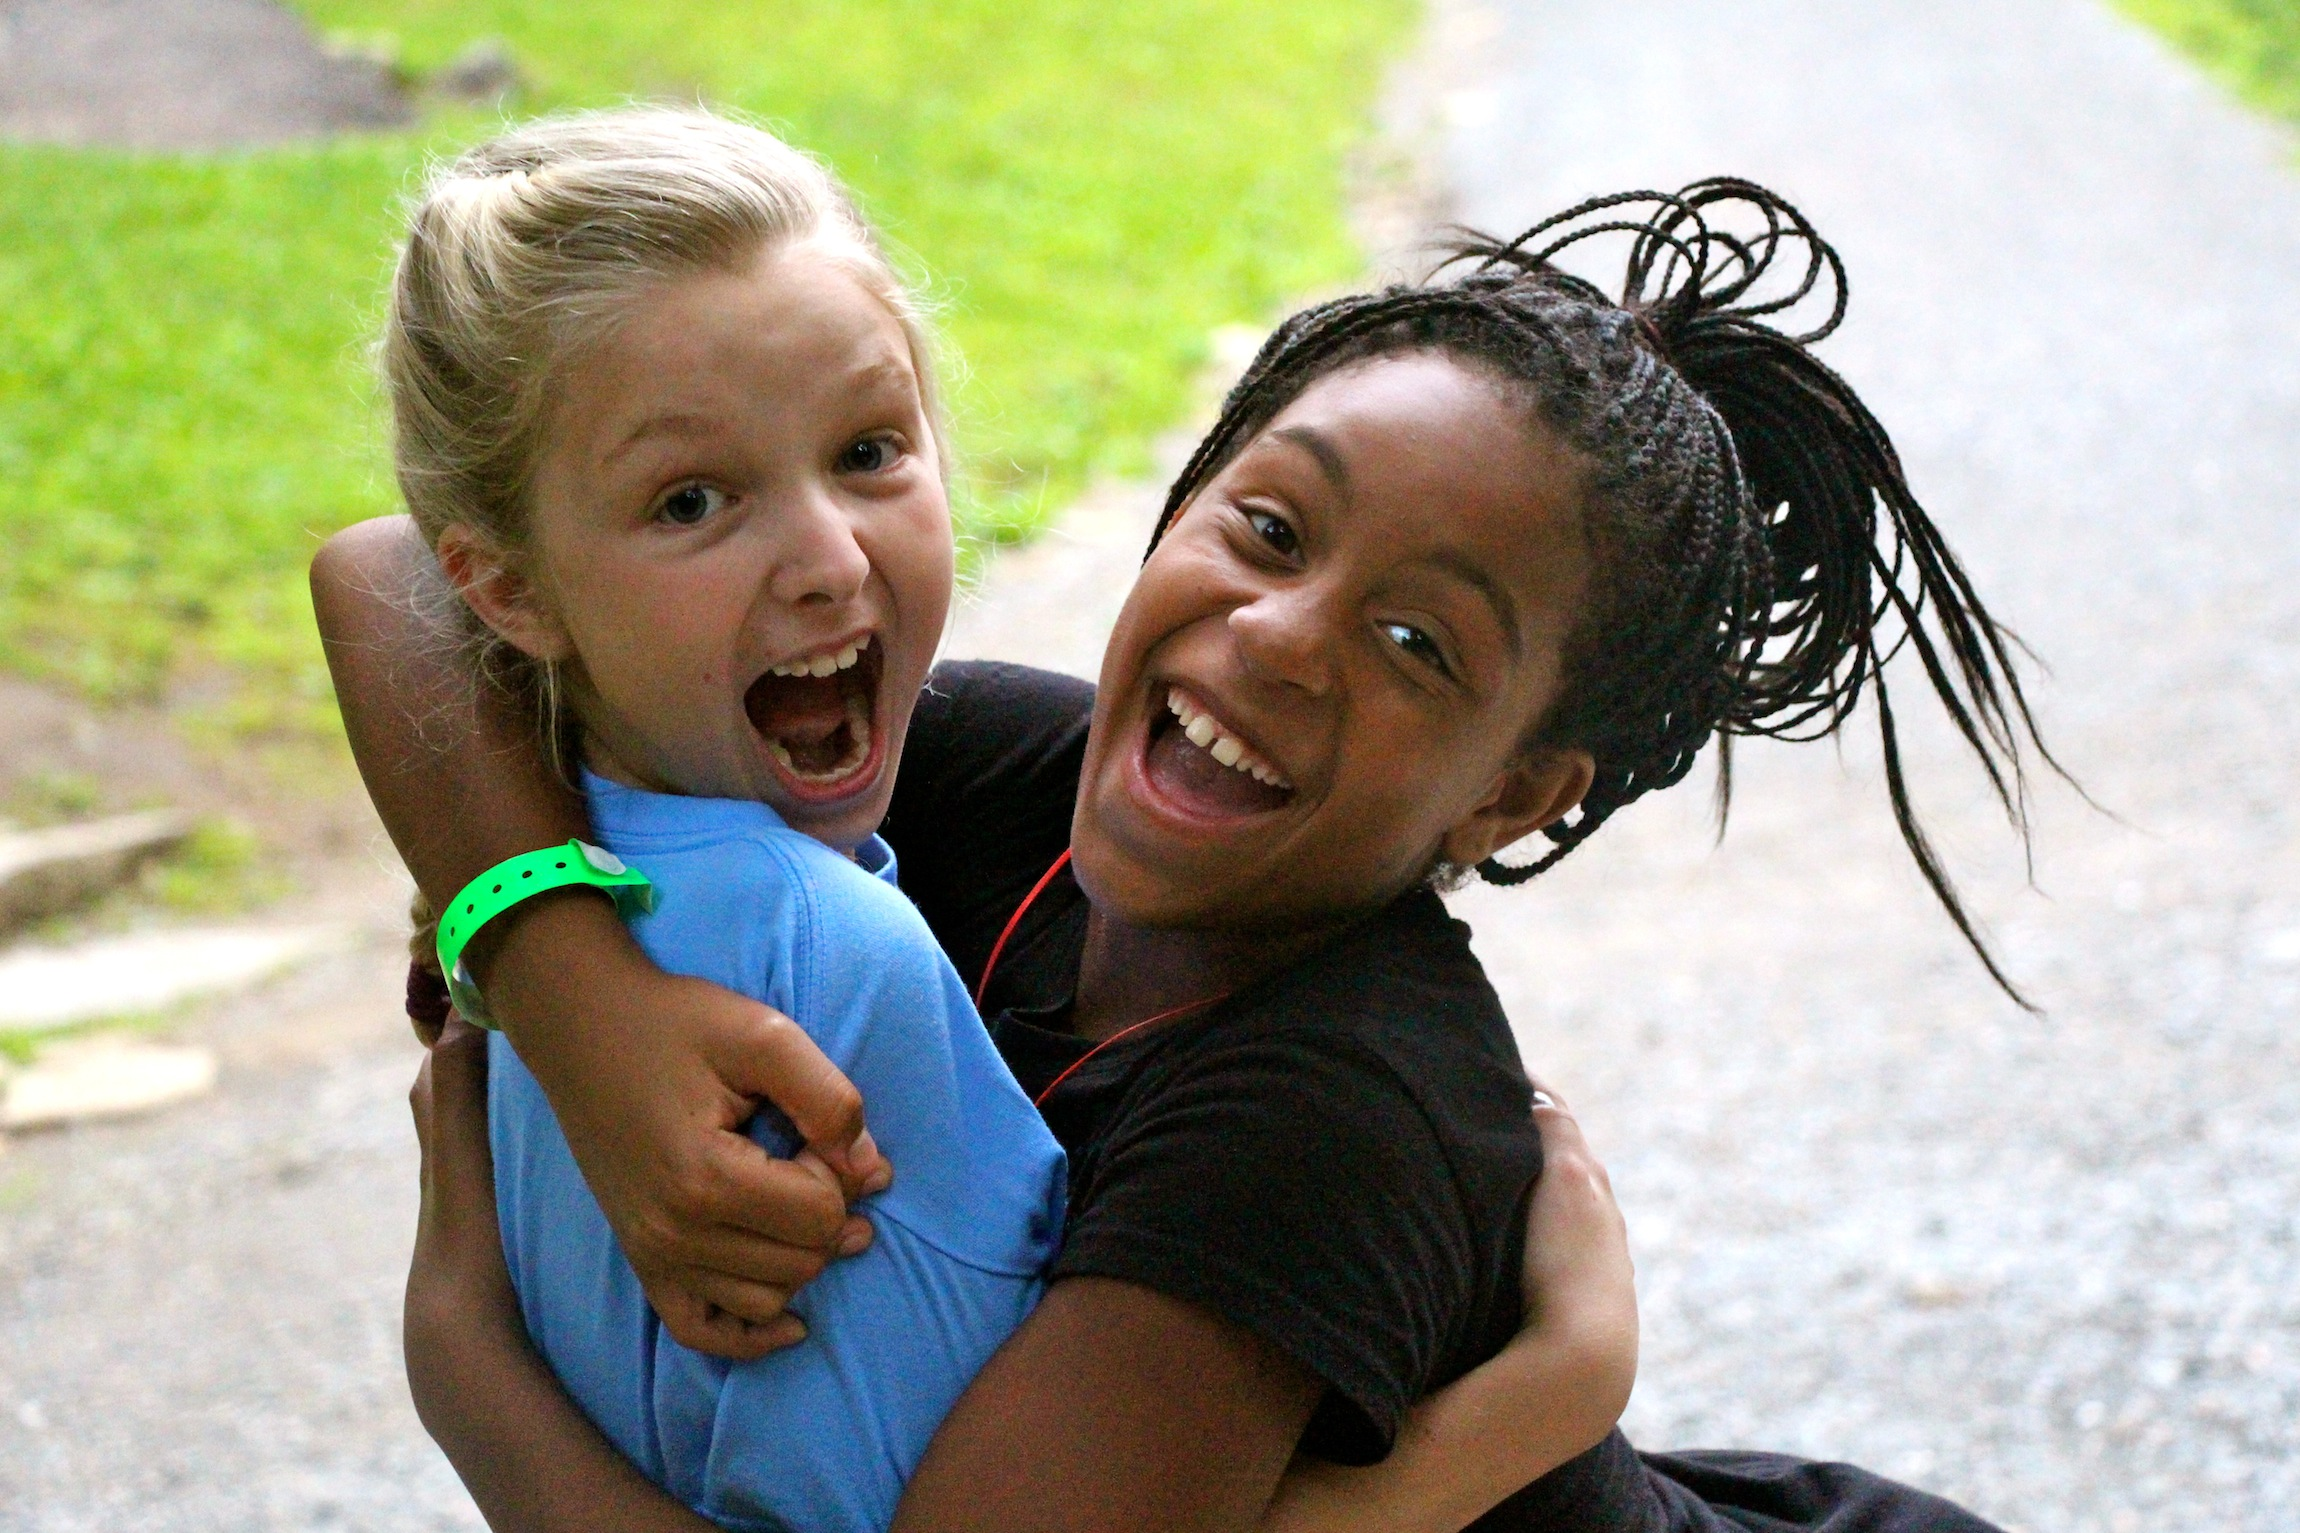 white and black camp kids hugging